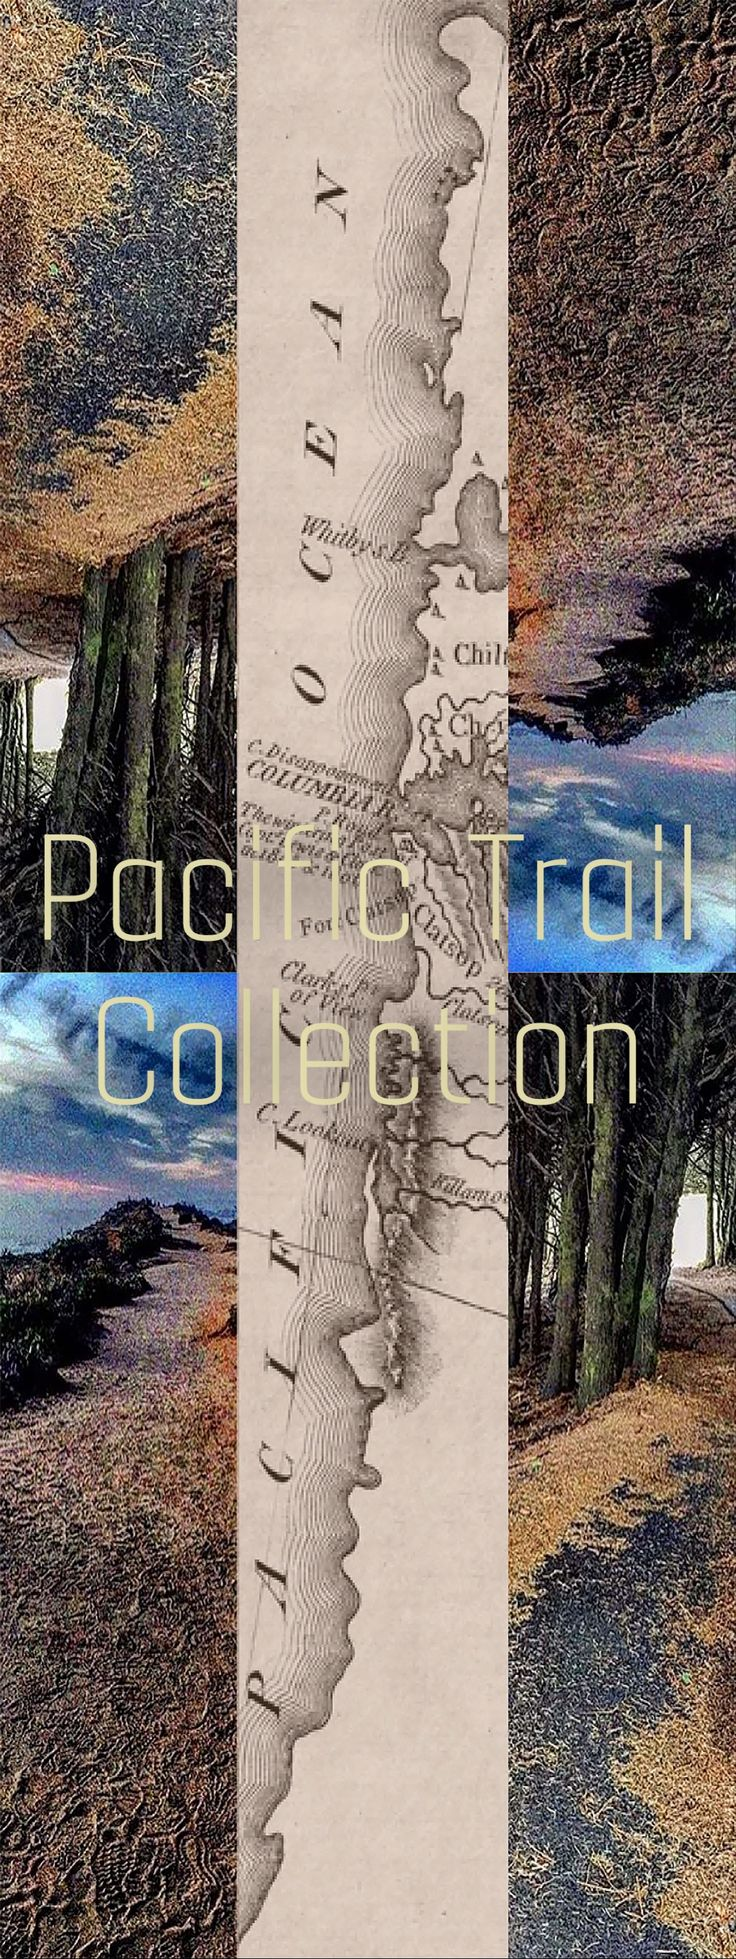 G r a c e C o l l e c t I o n - I put together a collection of gifts that express grace in the wonder of nature and the spirit of the great outdoors: Beach and Mountain Culture with its challenge, it beauty, full in heart and blessed with an abundance of peace. Please Enjoy. 10% of my profits go to Green Peace. Woman's Fashion: Scarves, Handbags, Pillows and T's.